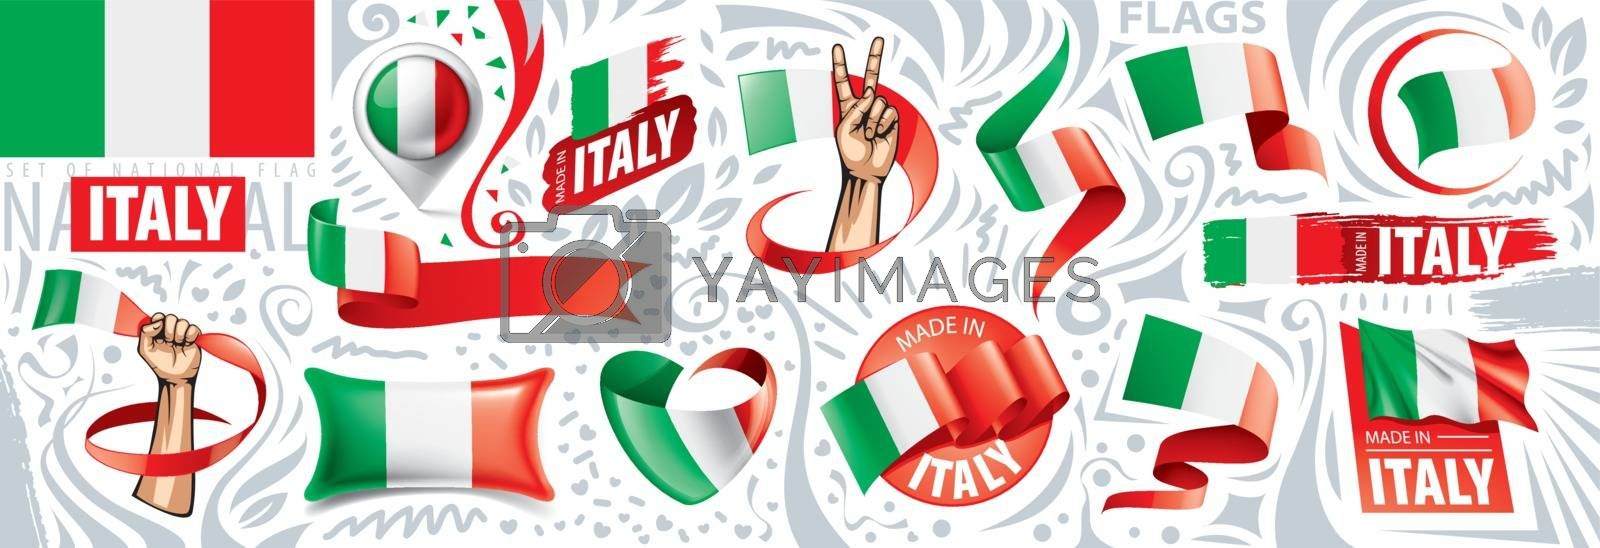 Vector set of the national flag of Italy in various creative designs by Butenkov